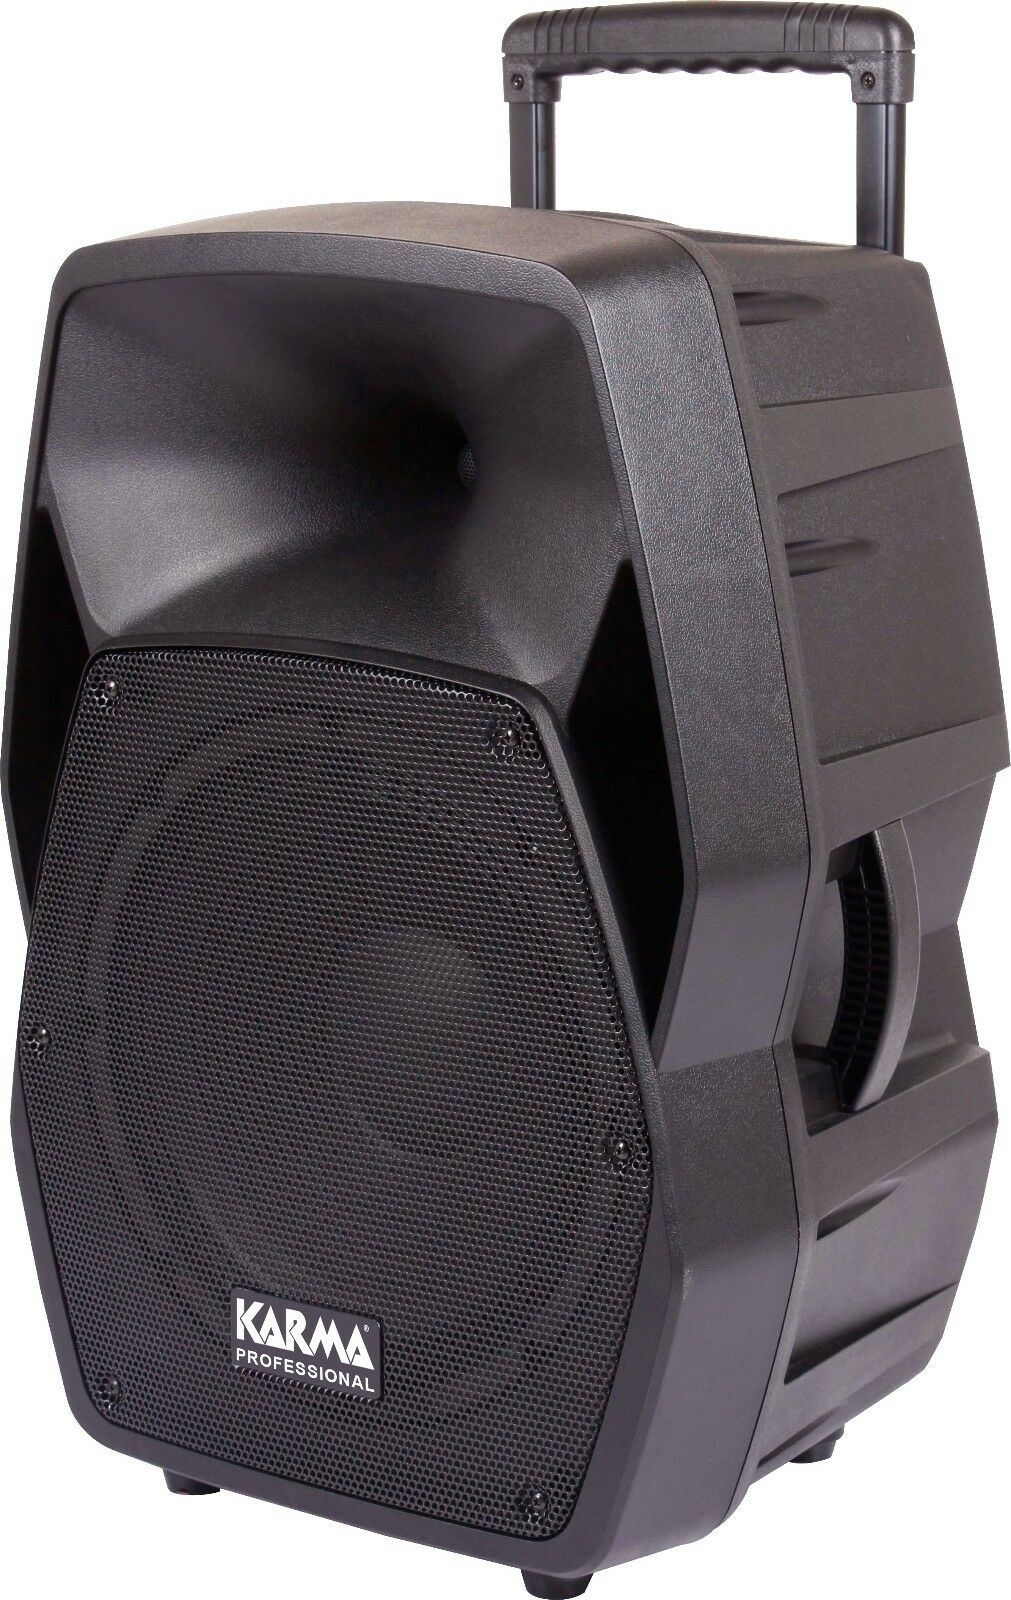 Bx 7212pro diffuser amplified